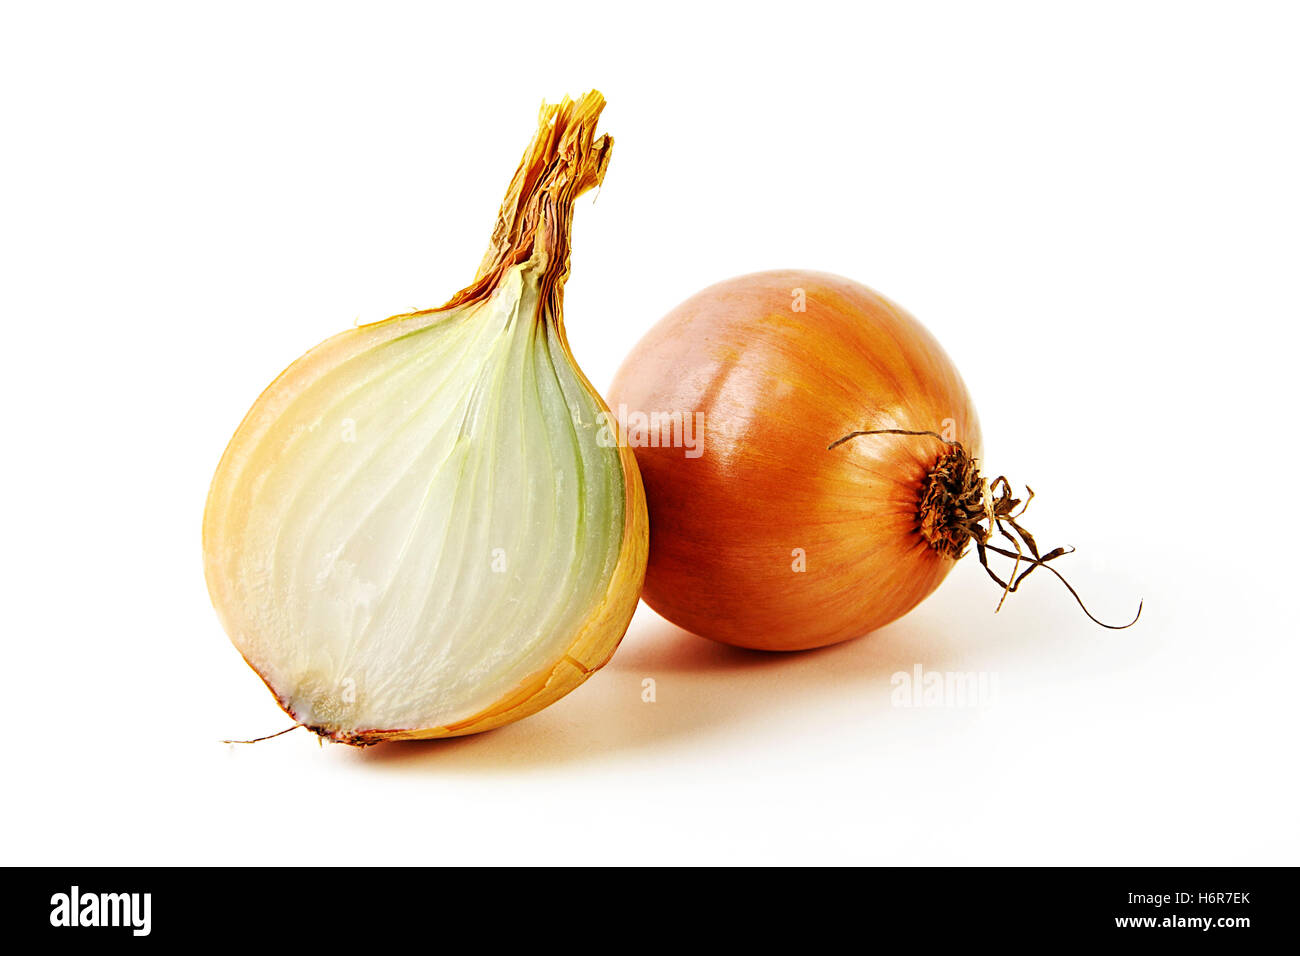 exempted onion with ziebelhalfte Stock Photo